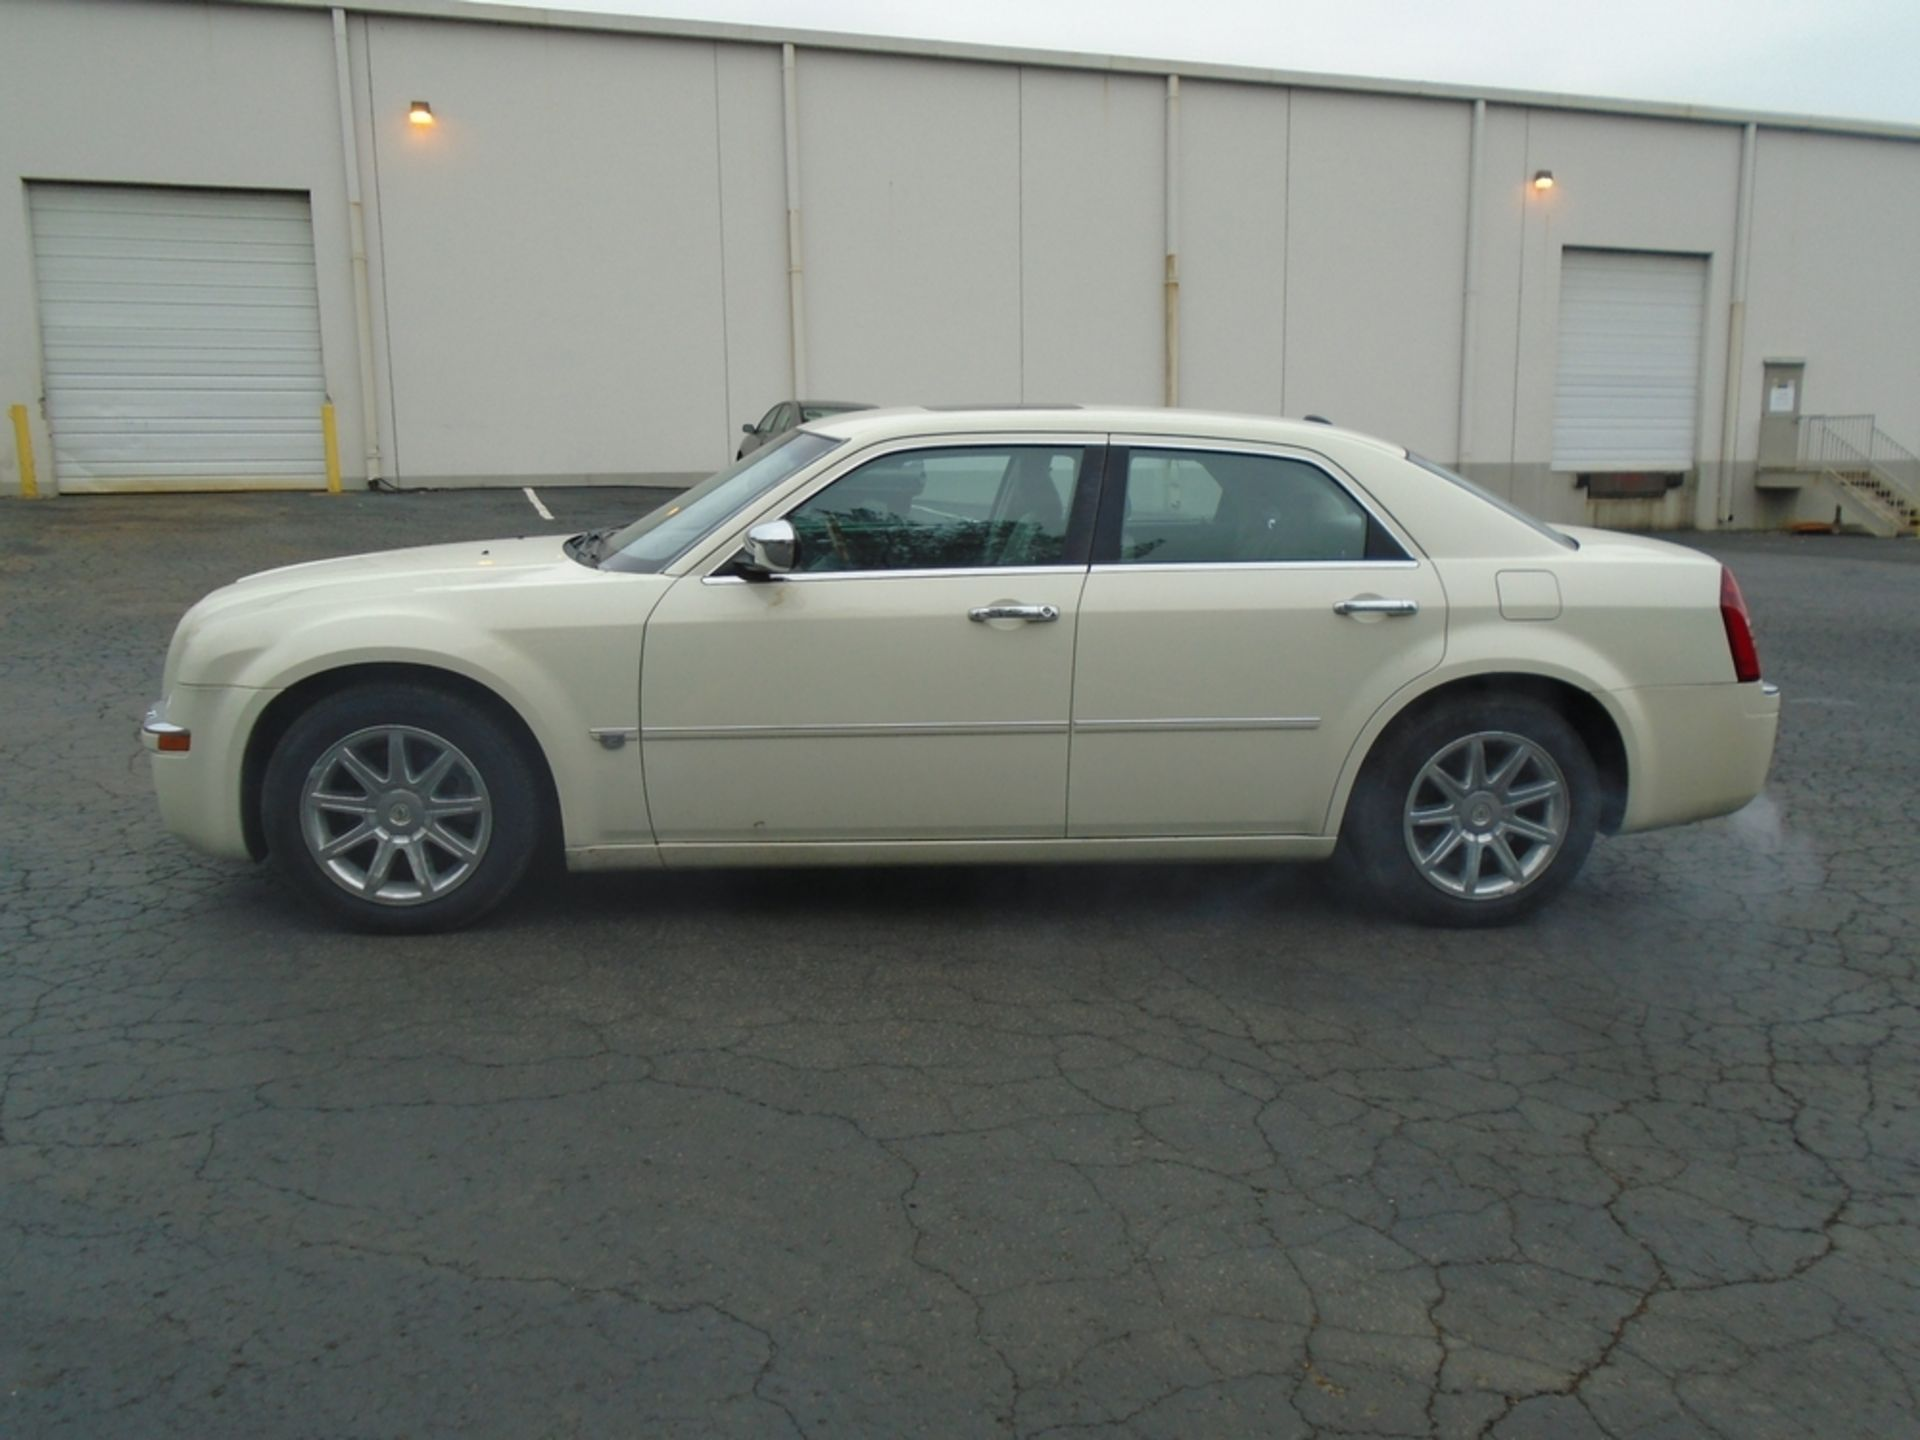 Lot 119A - 2005 Chrysler 300C Leather Interior Brand New Tires Full Spare Tire AC, Navigation, Blue Tooth